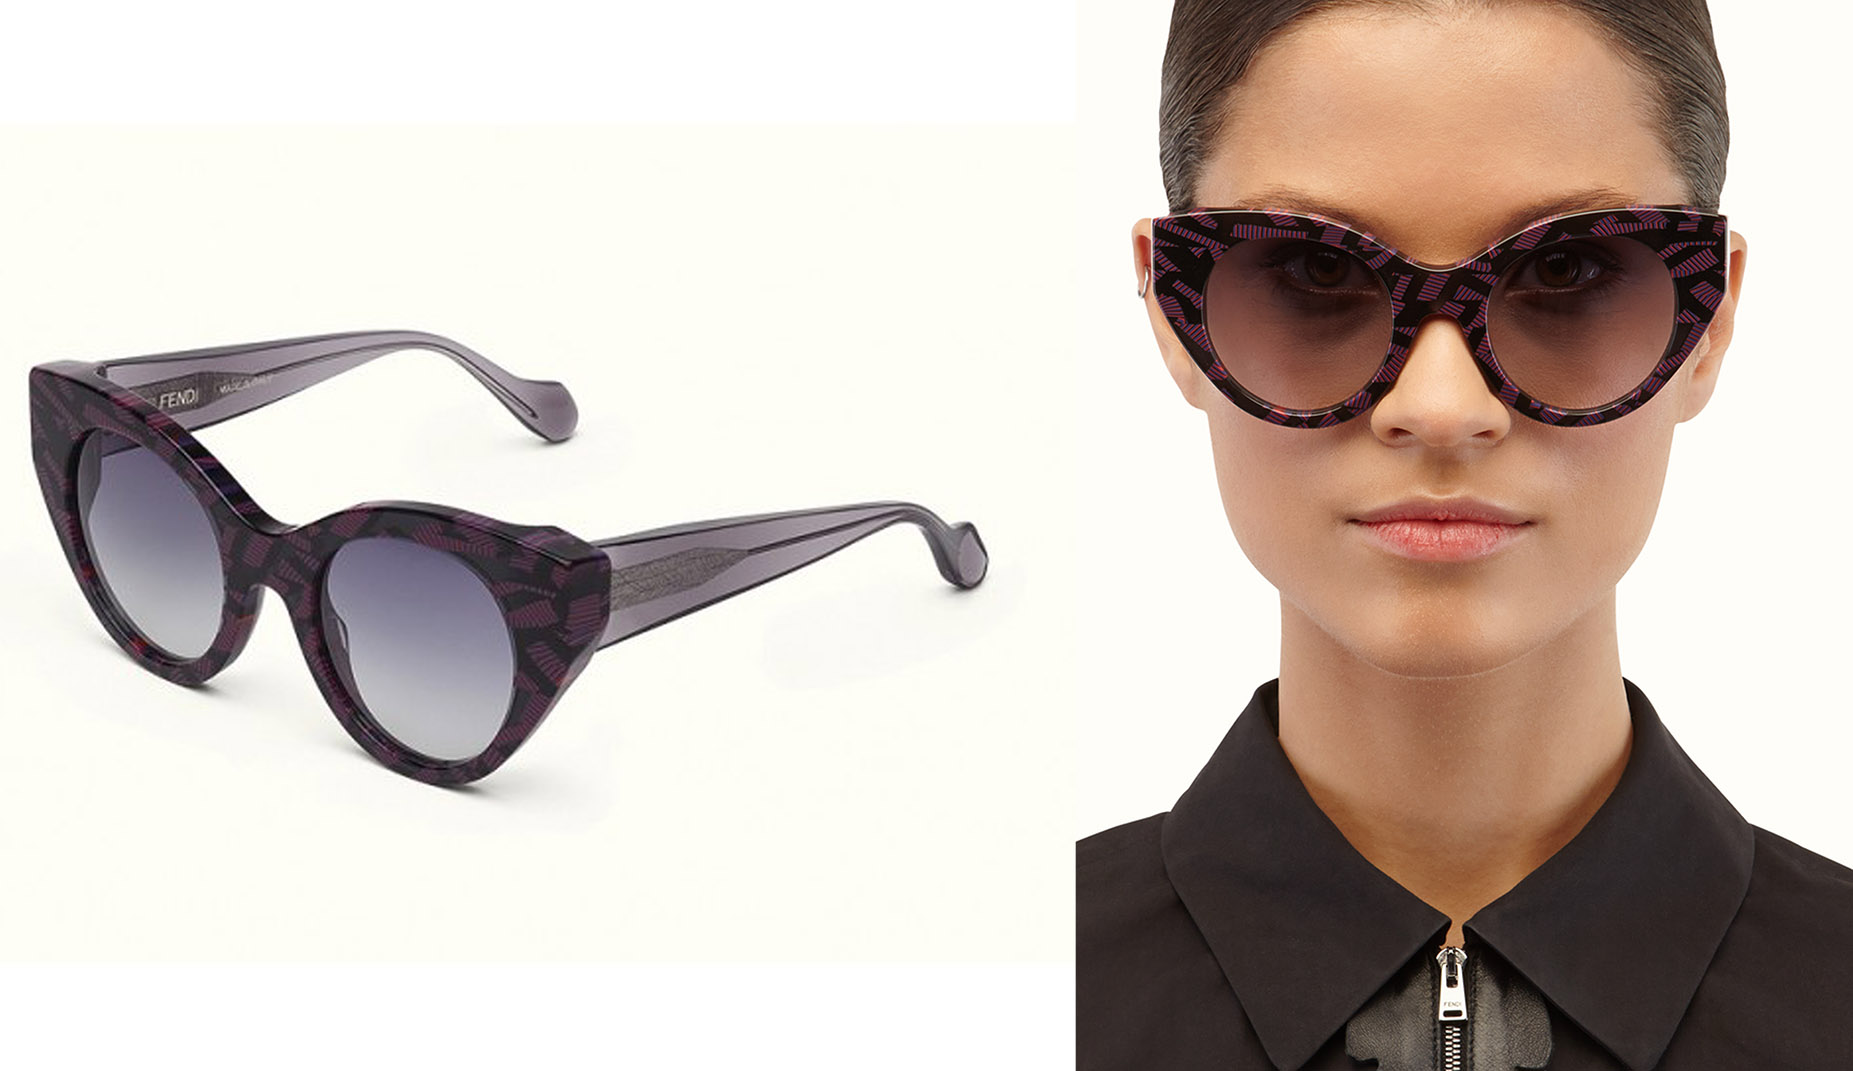 Fendi Fanny 0105/S by Thierry Lasry